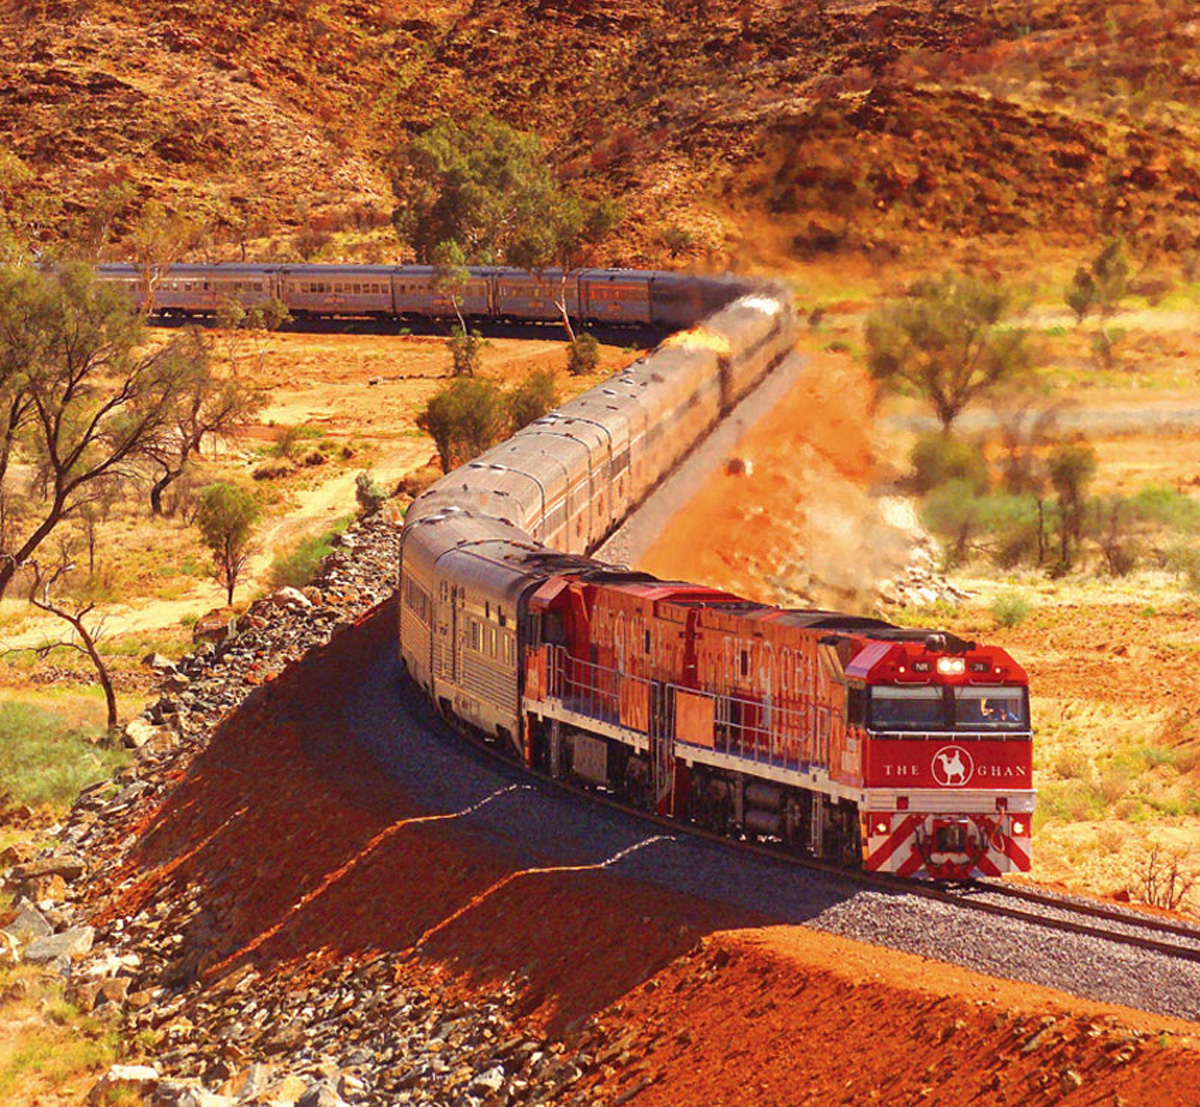 The Ghan weaves its way through the Outback on its way north.